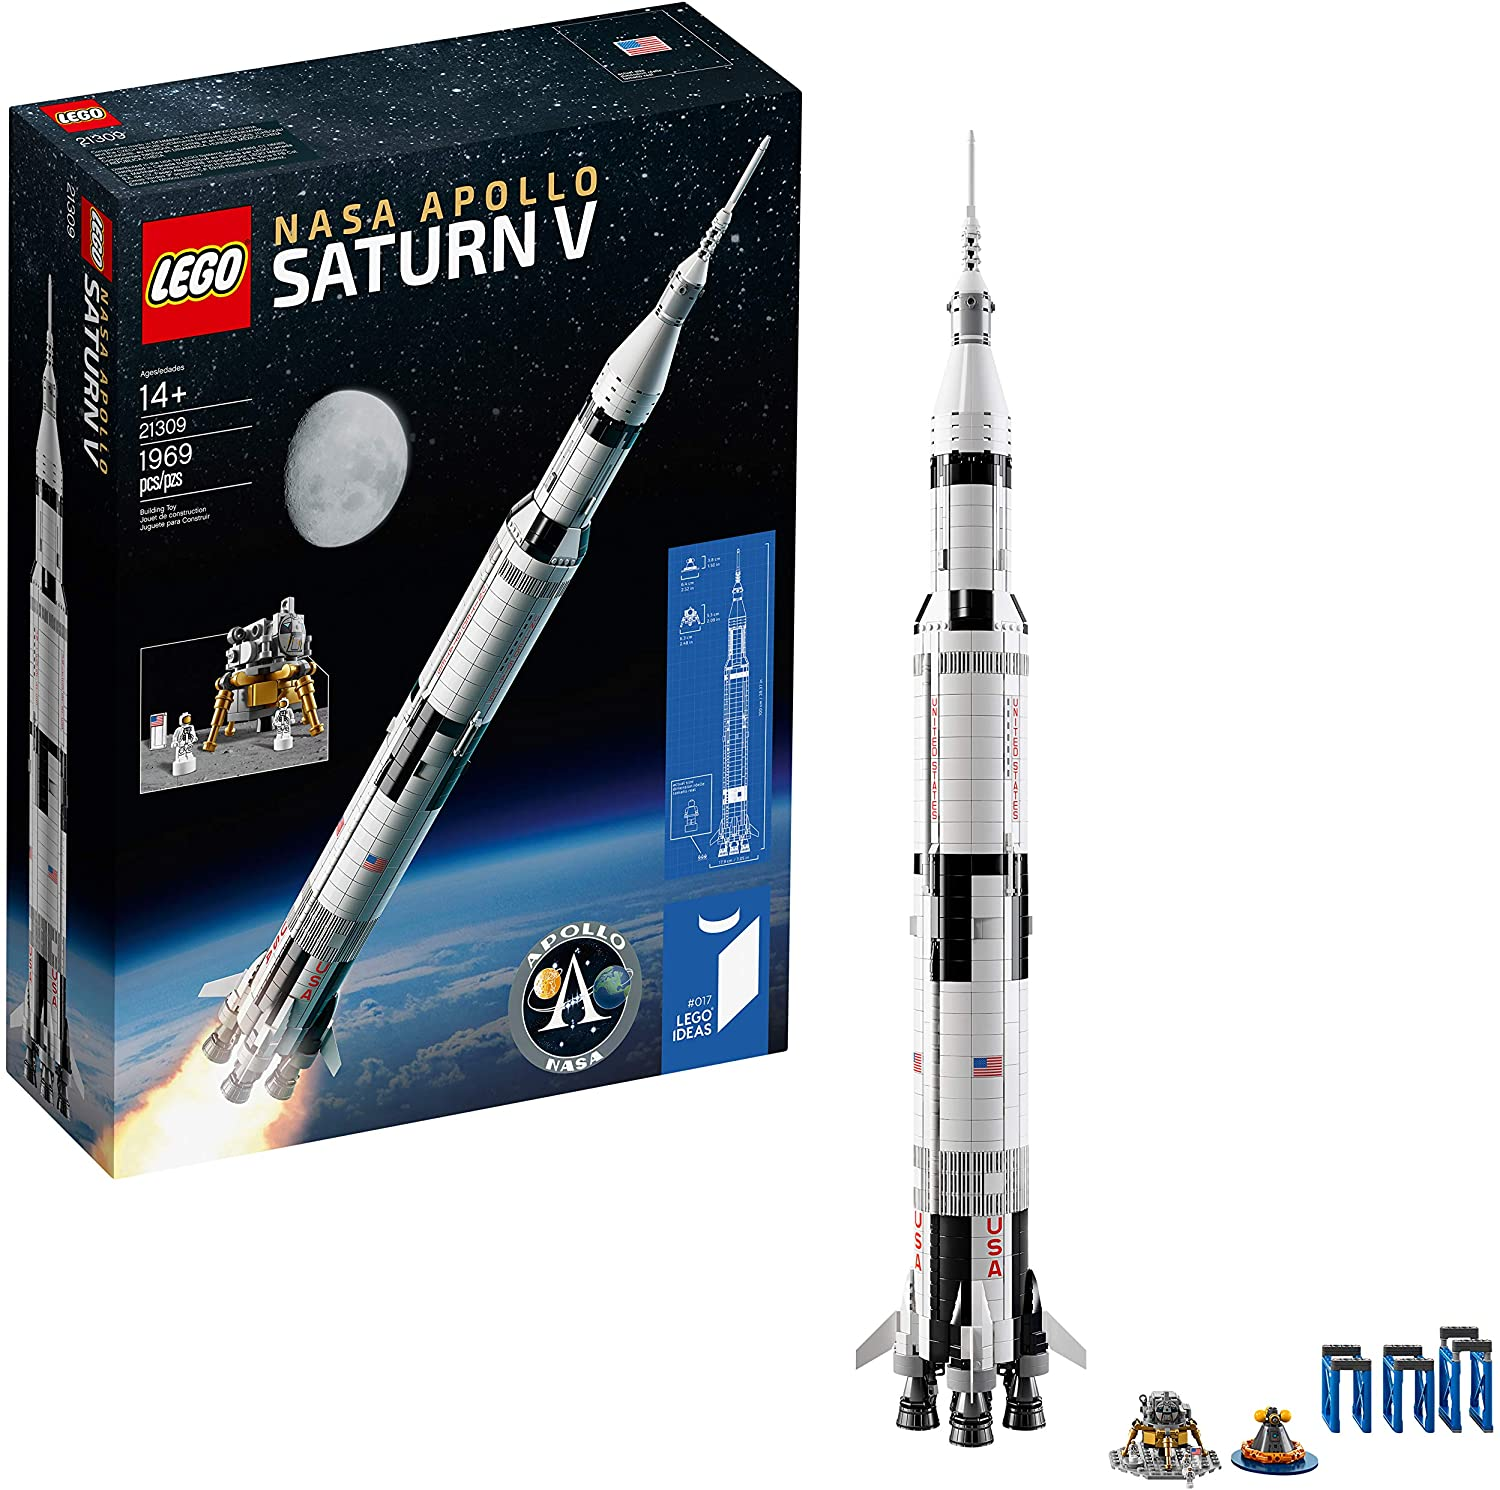 LEGO Saturn V Kit